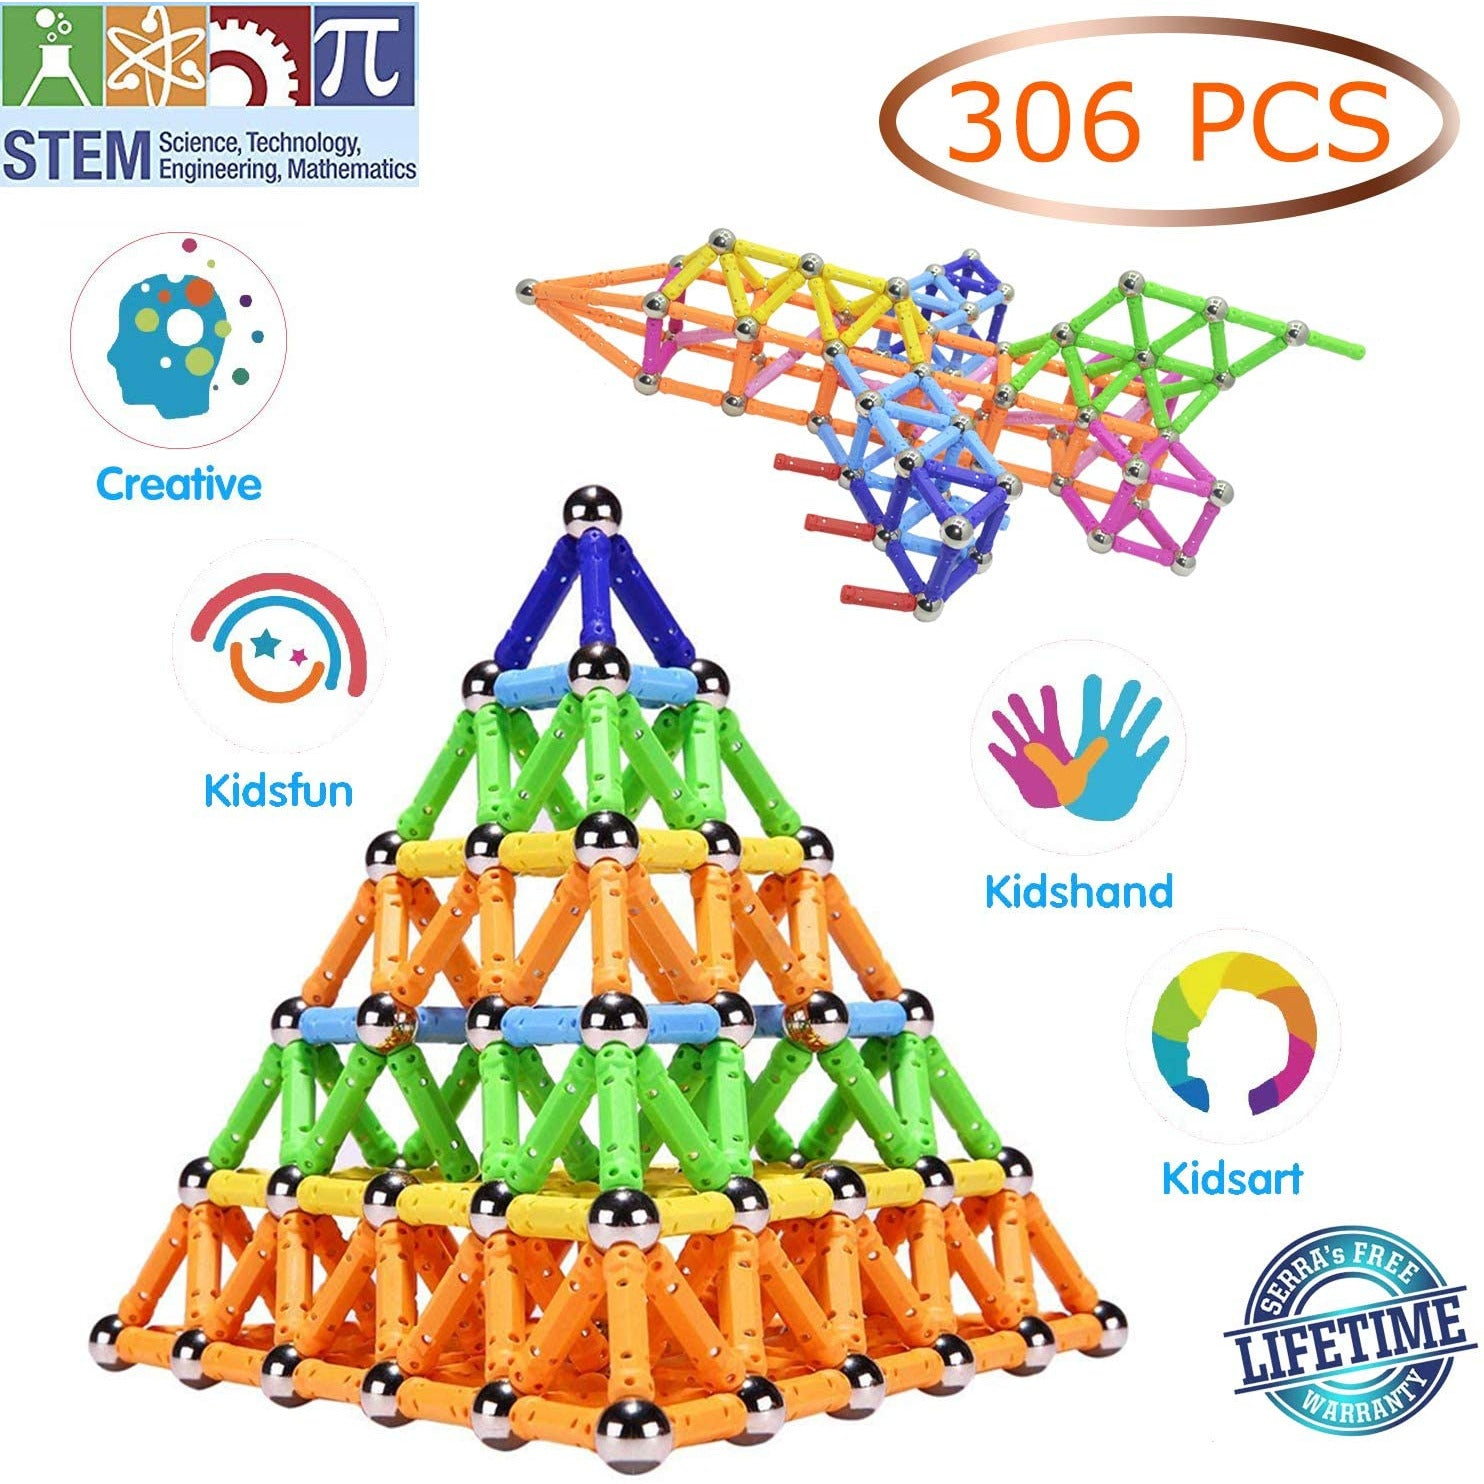 Veatree 306 Pieces Magnetic Sticks Building Blocks Toys, Magnet Construction Build Kit Education Toys 3D Puzzle for Kids and Adult, Playing Stacking Game with Magnetic Sticks and Balls, Color Random